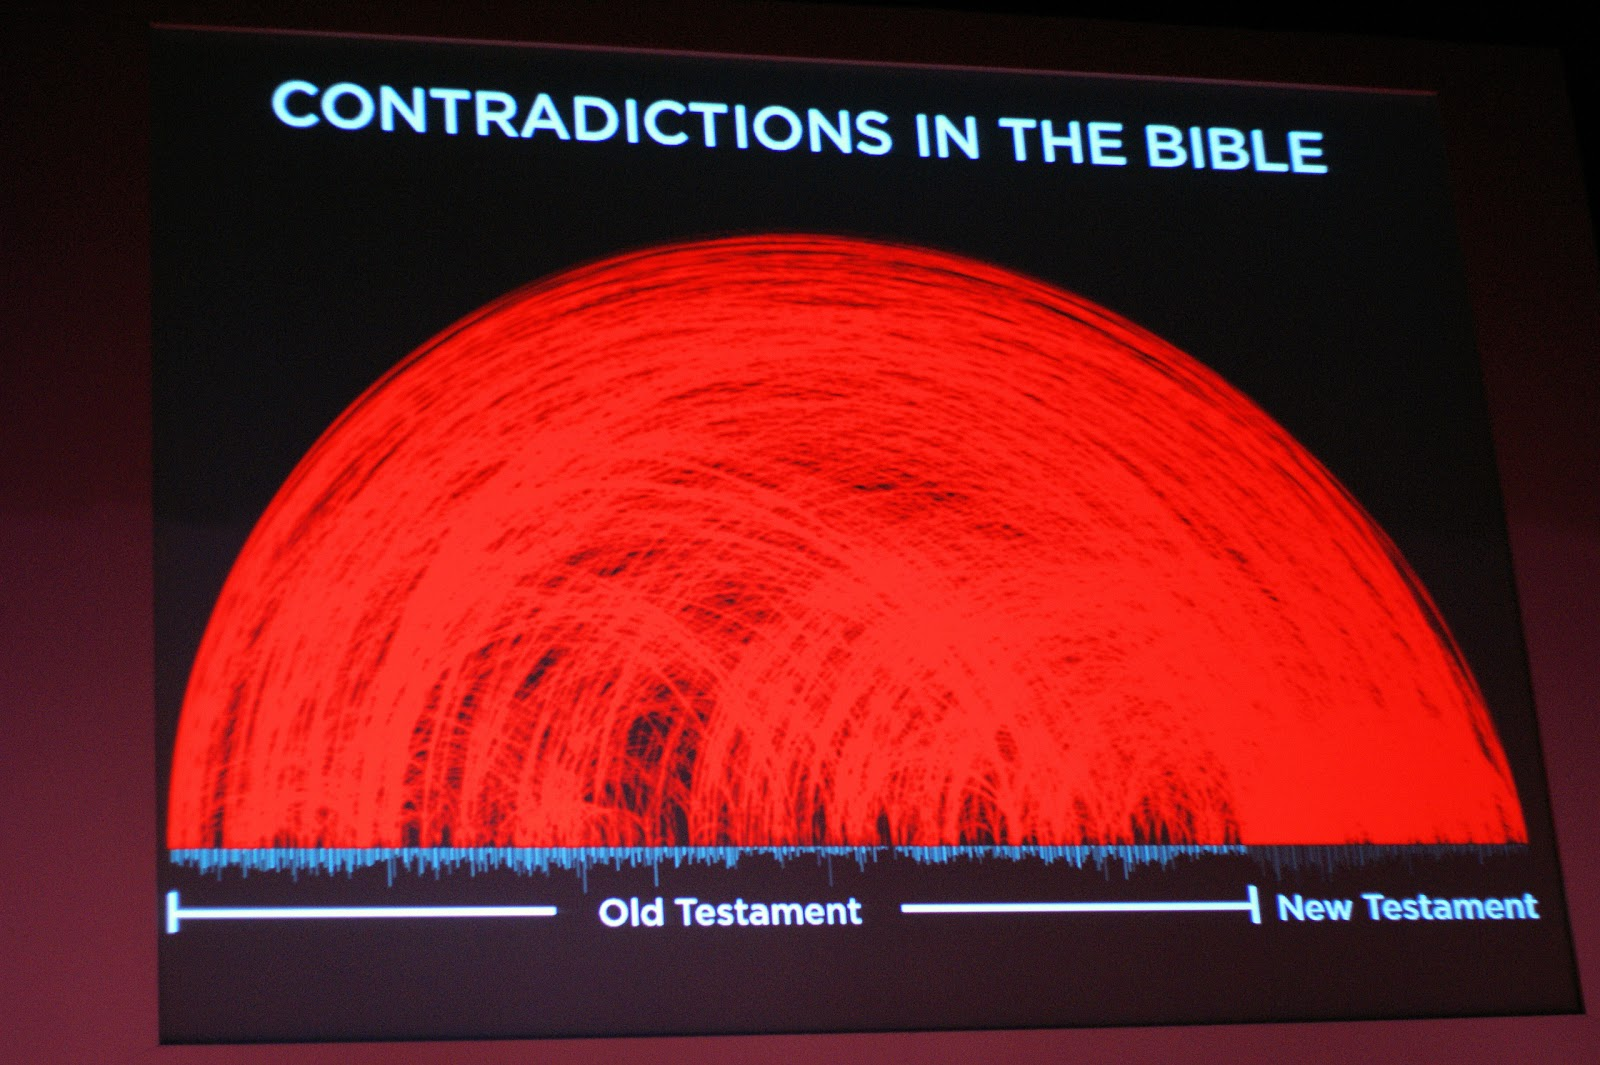 a discussion on the contradictions found in the bible In alleged discrepancies of the bible, john haley directly addresses questions surrounding common misunderstandings of scripture  study contradictions answer god.